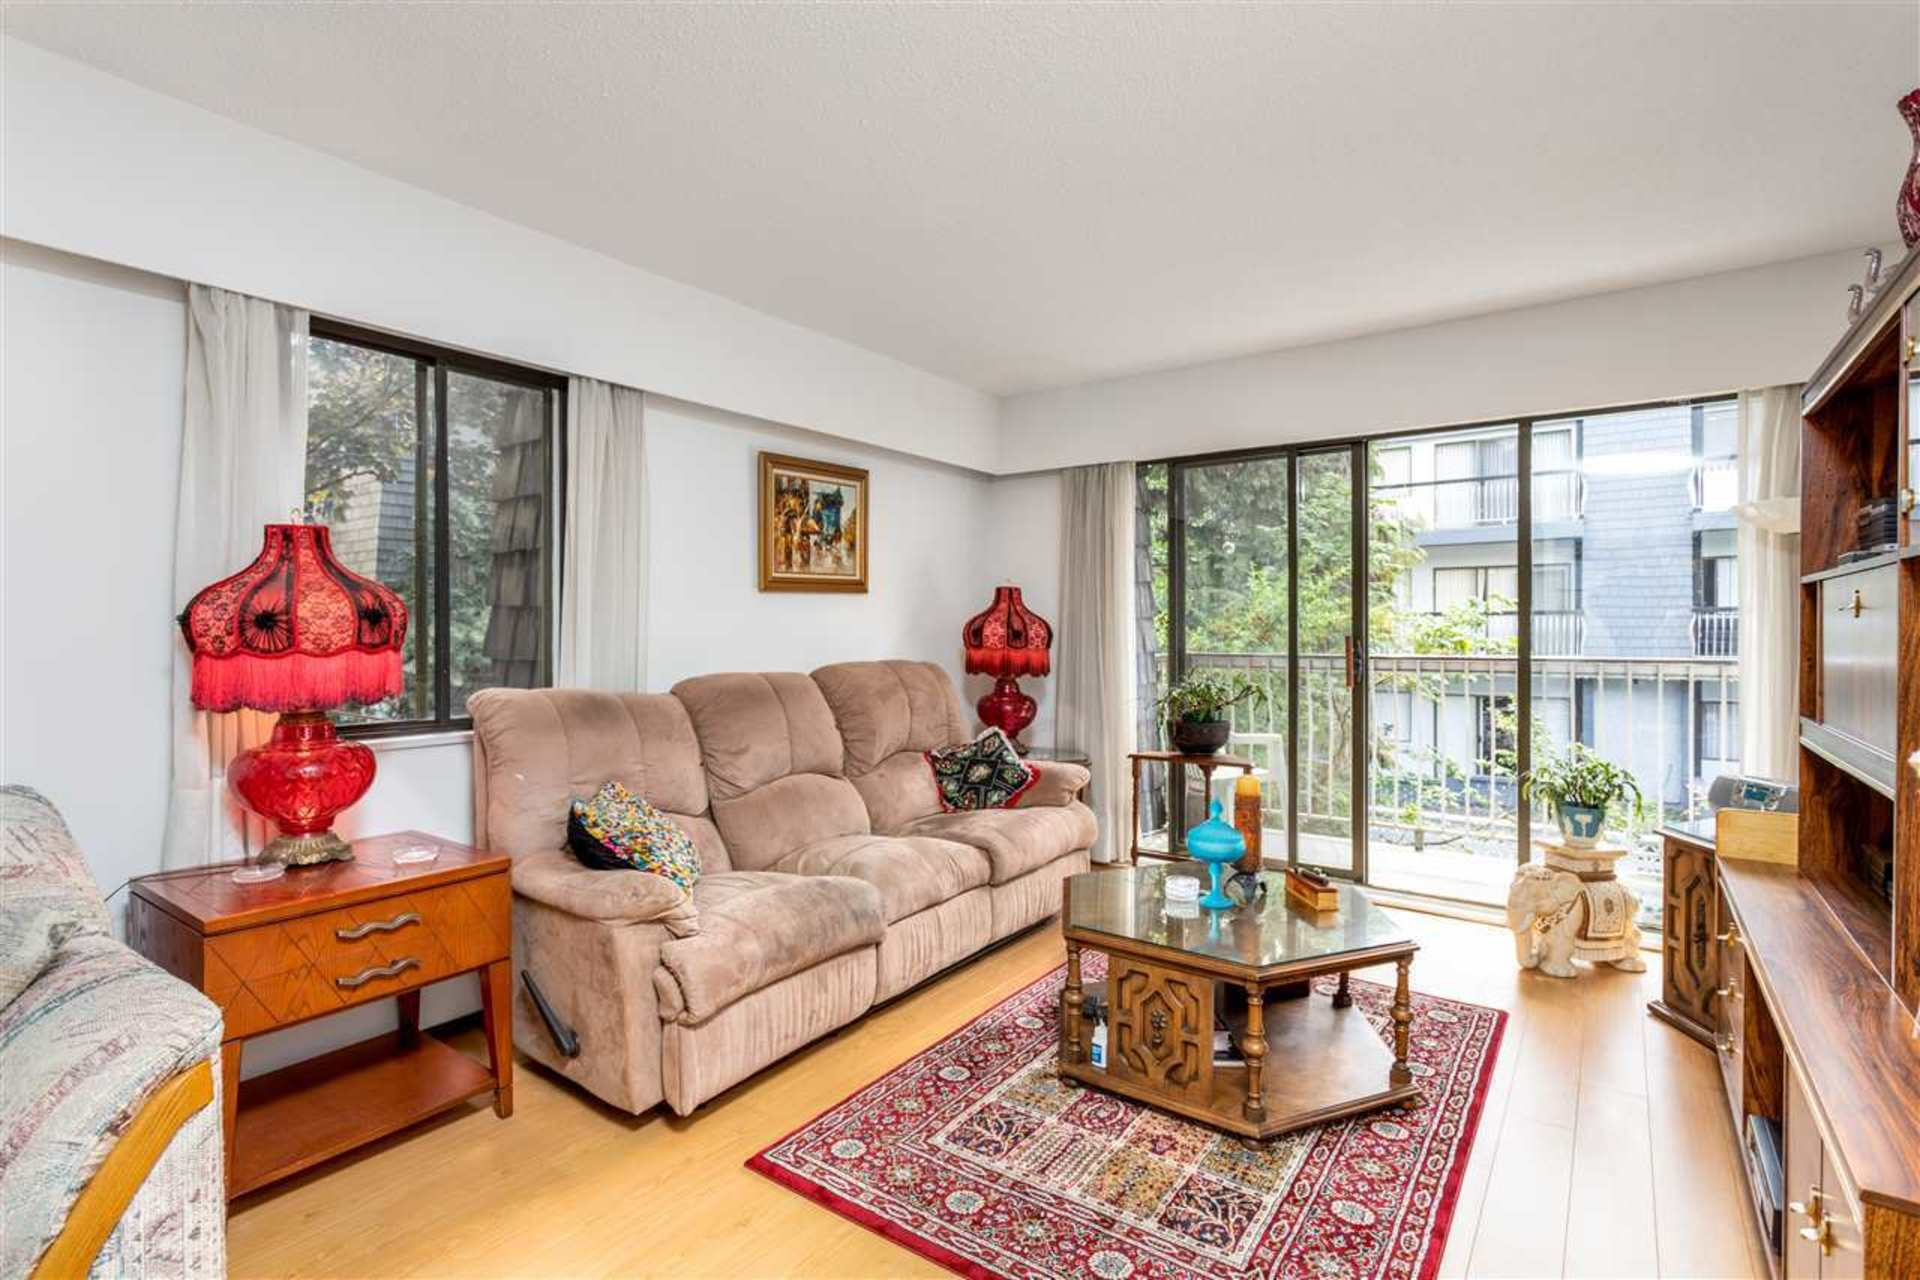 7428-19th-avenue-edmonds-be-burnaby-east-03 at 211 - 7428 19th Avenue, Edmonds BE, Burnaby East